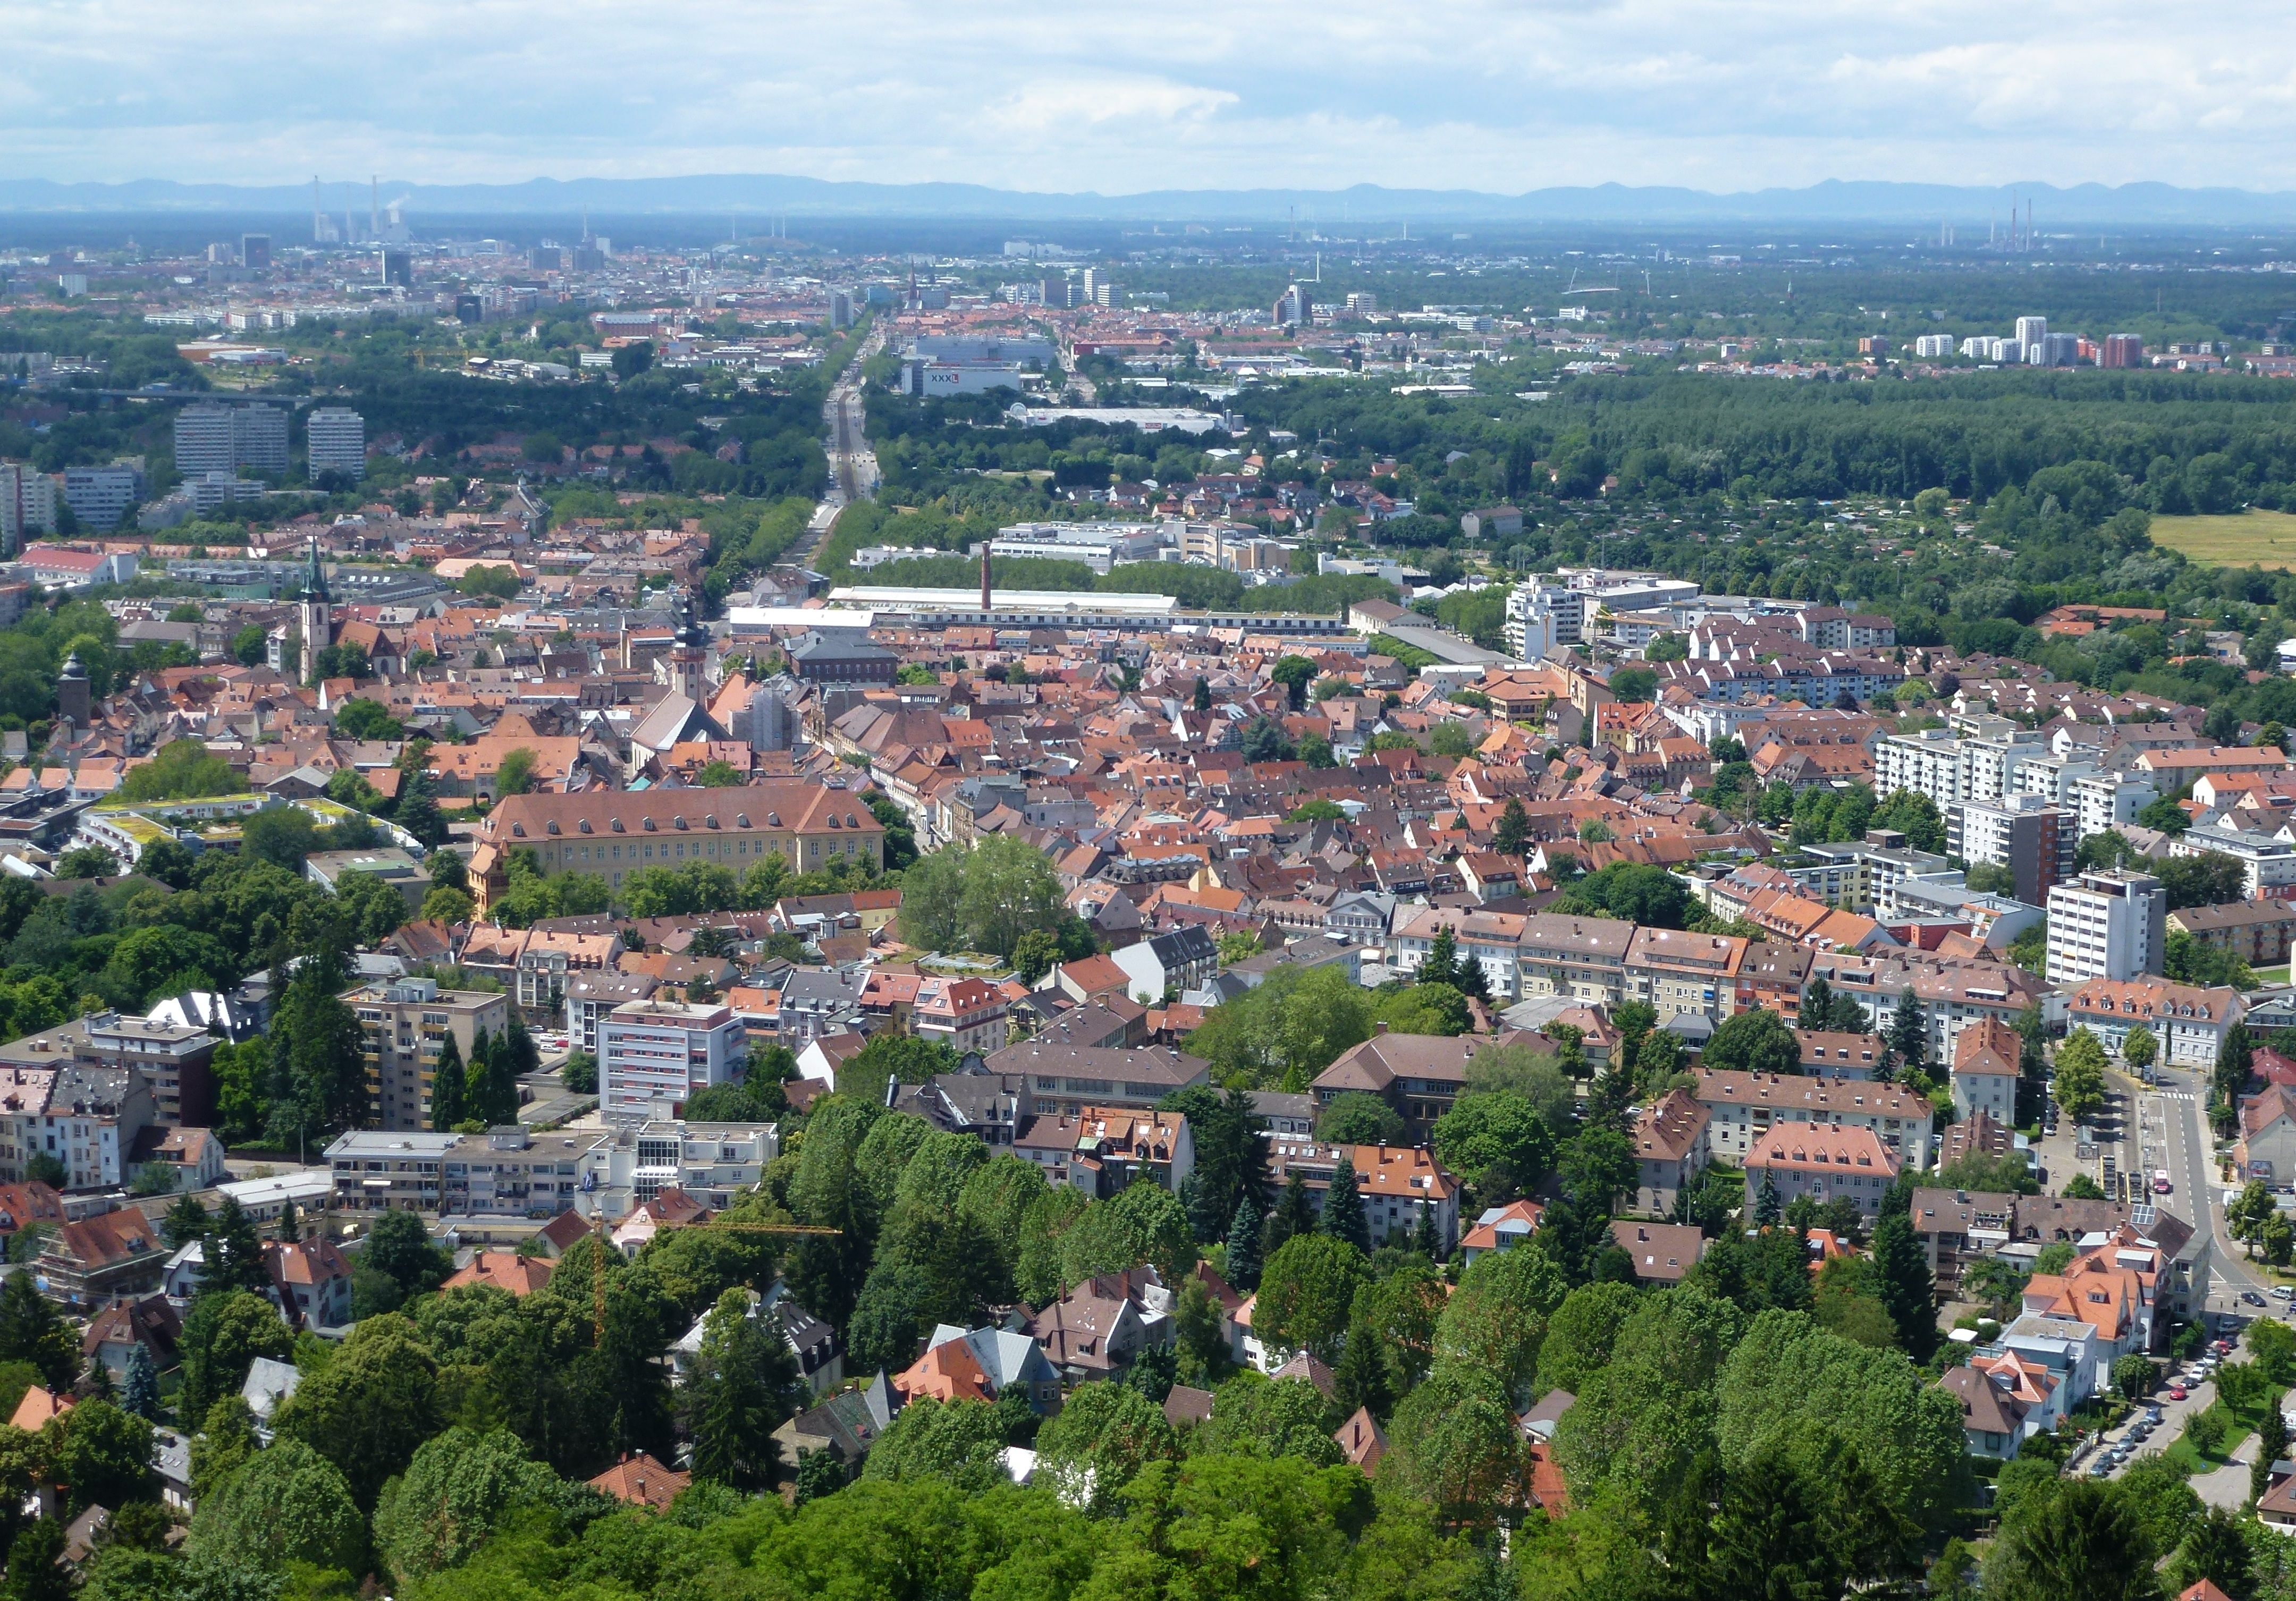 Karlsruhe_view_from_Turmberg_2013.jpg